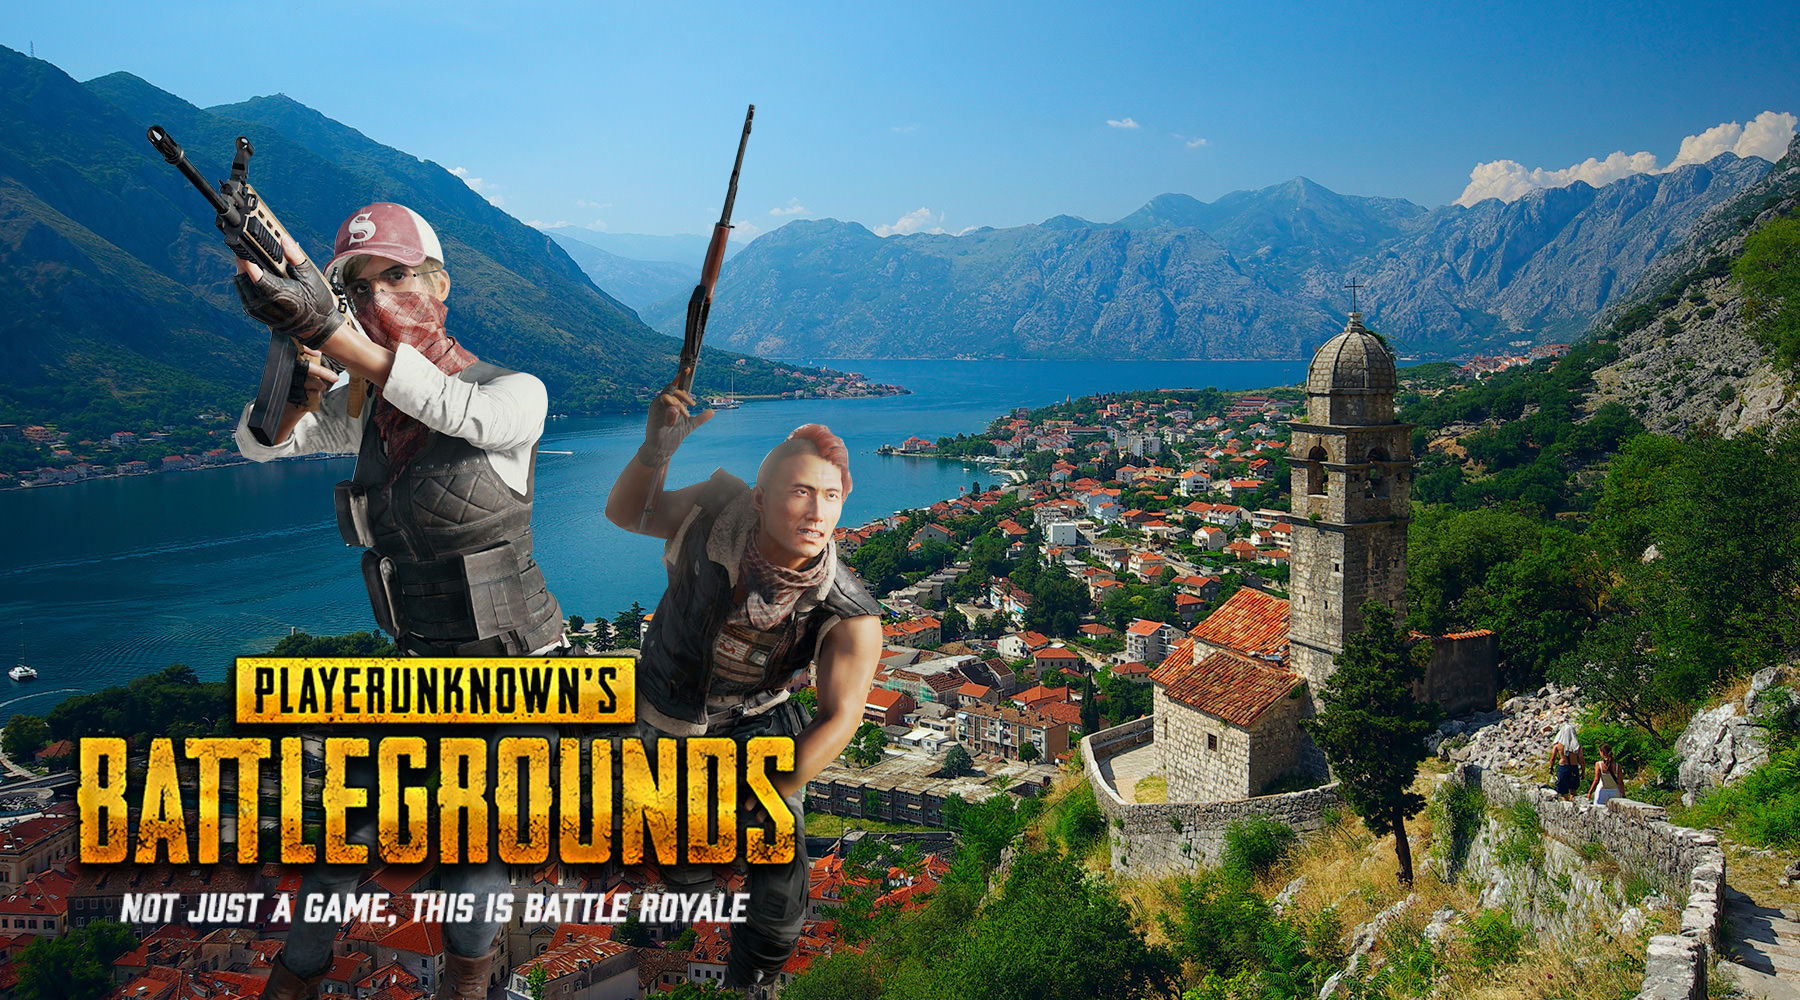 Playerunknown S Battlegrounds Newest Map: The Third PlayerUnknown's Battlegrounds Map Will Be Set In